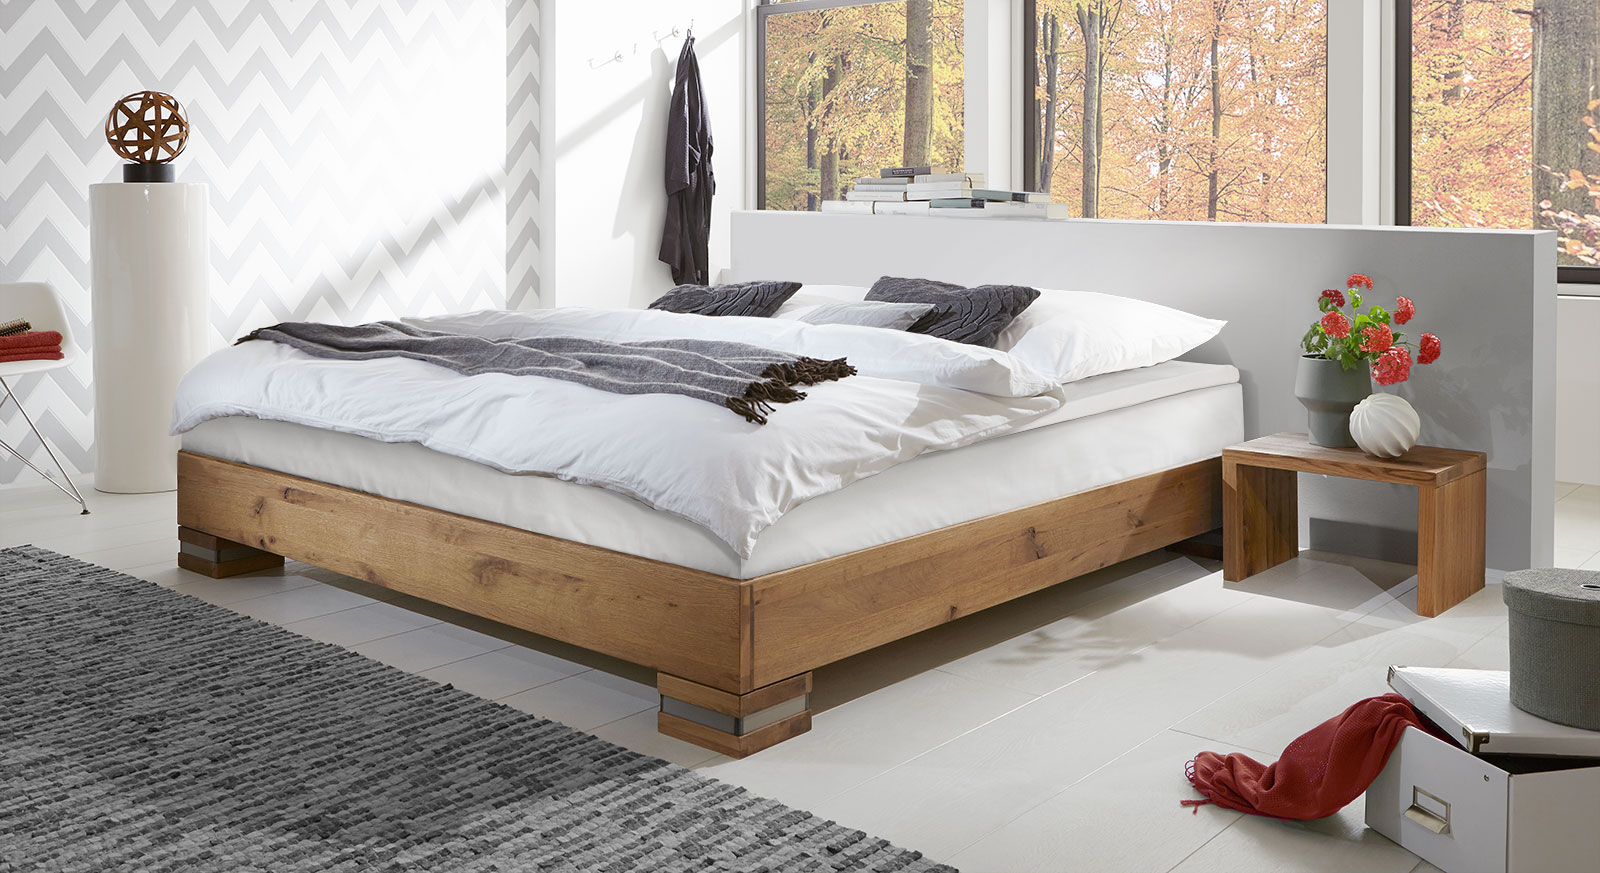 Boxspringliege Boxspringbett Aus Wildeiche In Futon Optik Mexiana